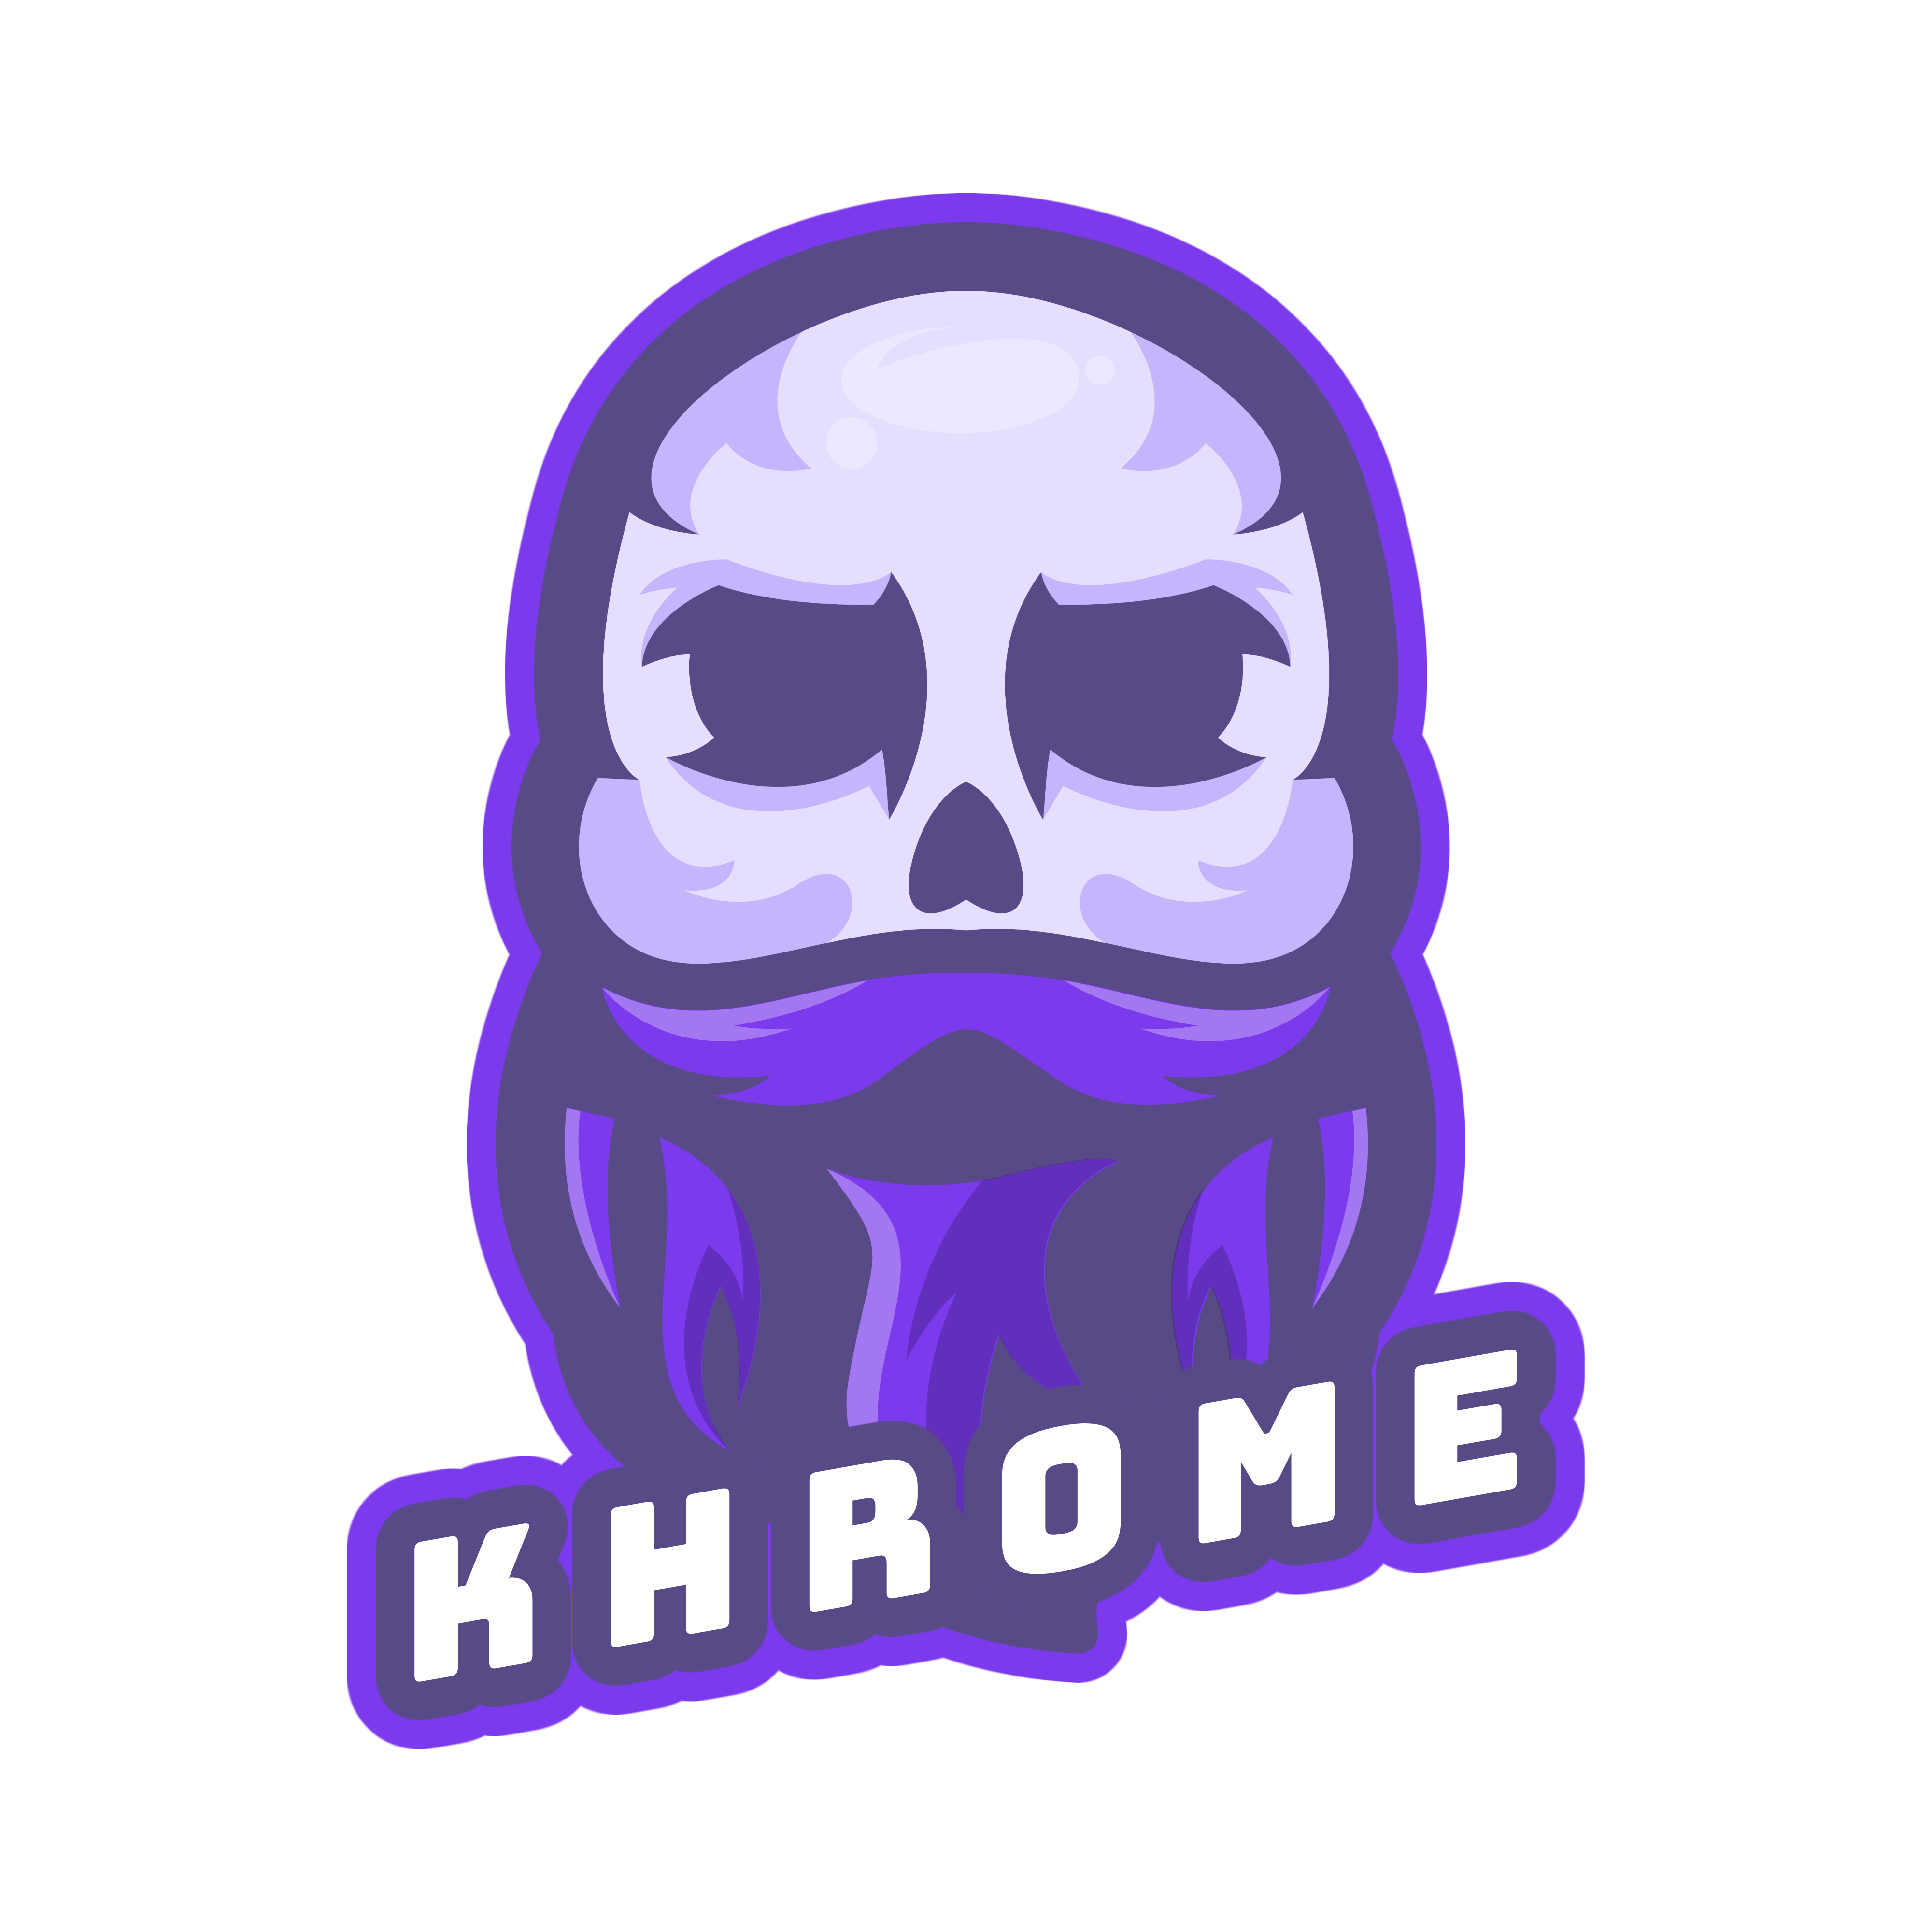 Khrome.dev logo - Bald skeleton with luscious beard in purple.